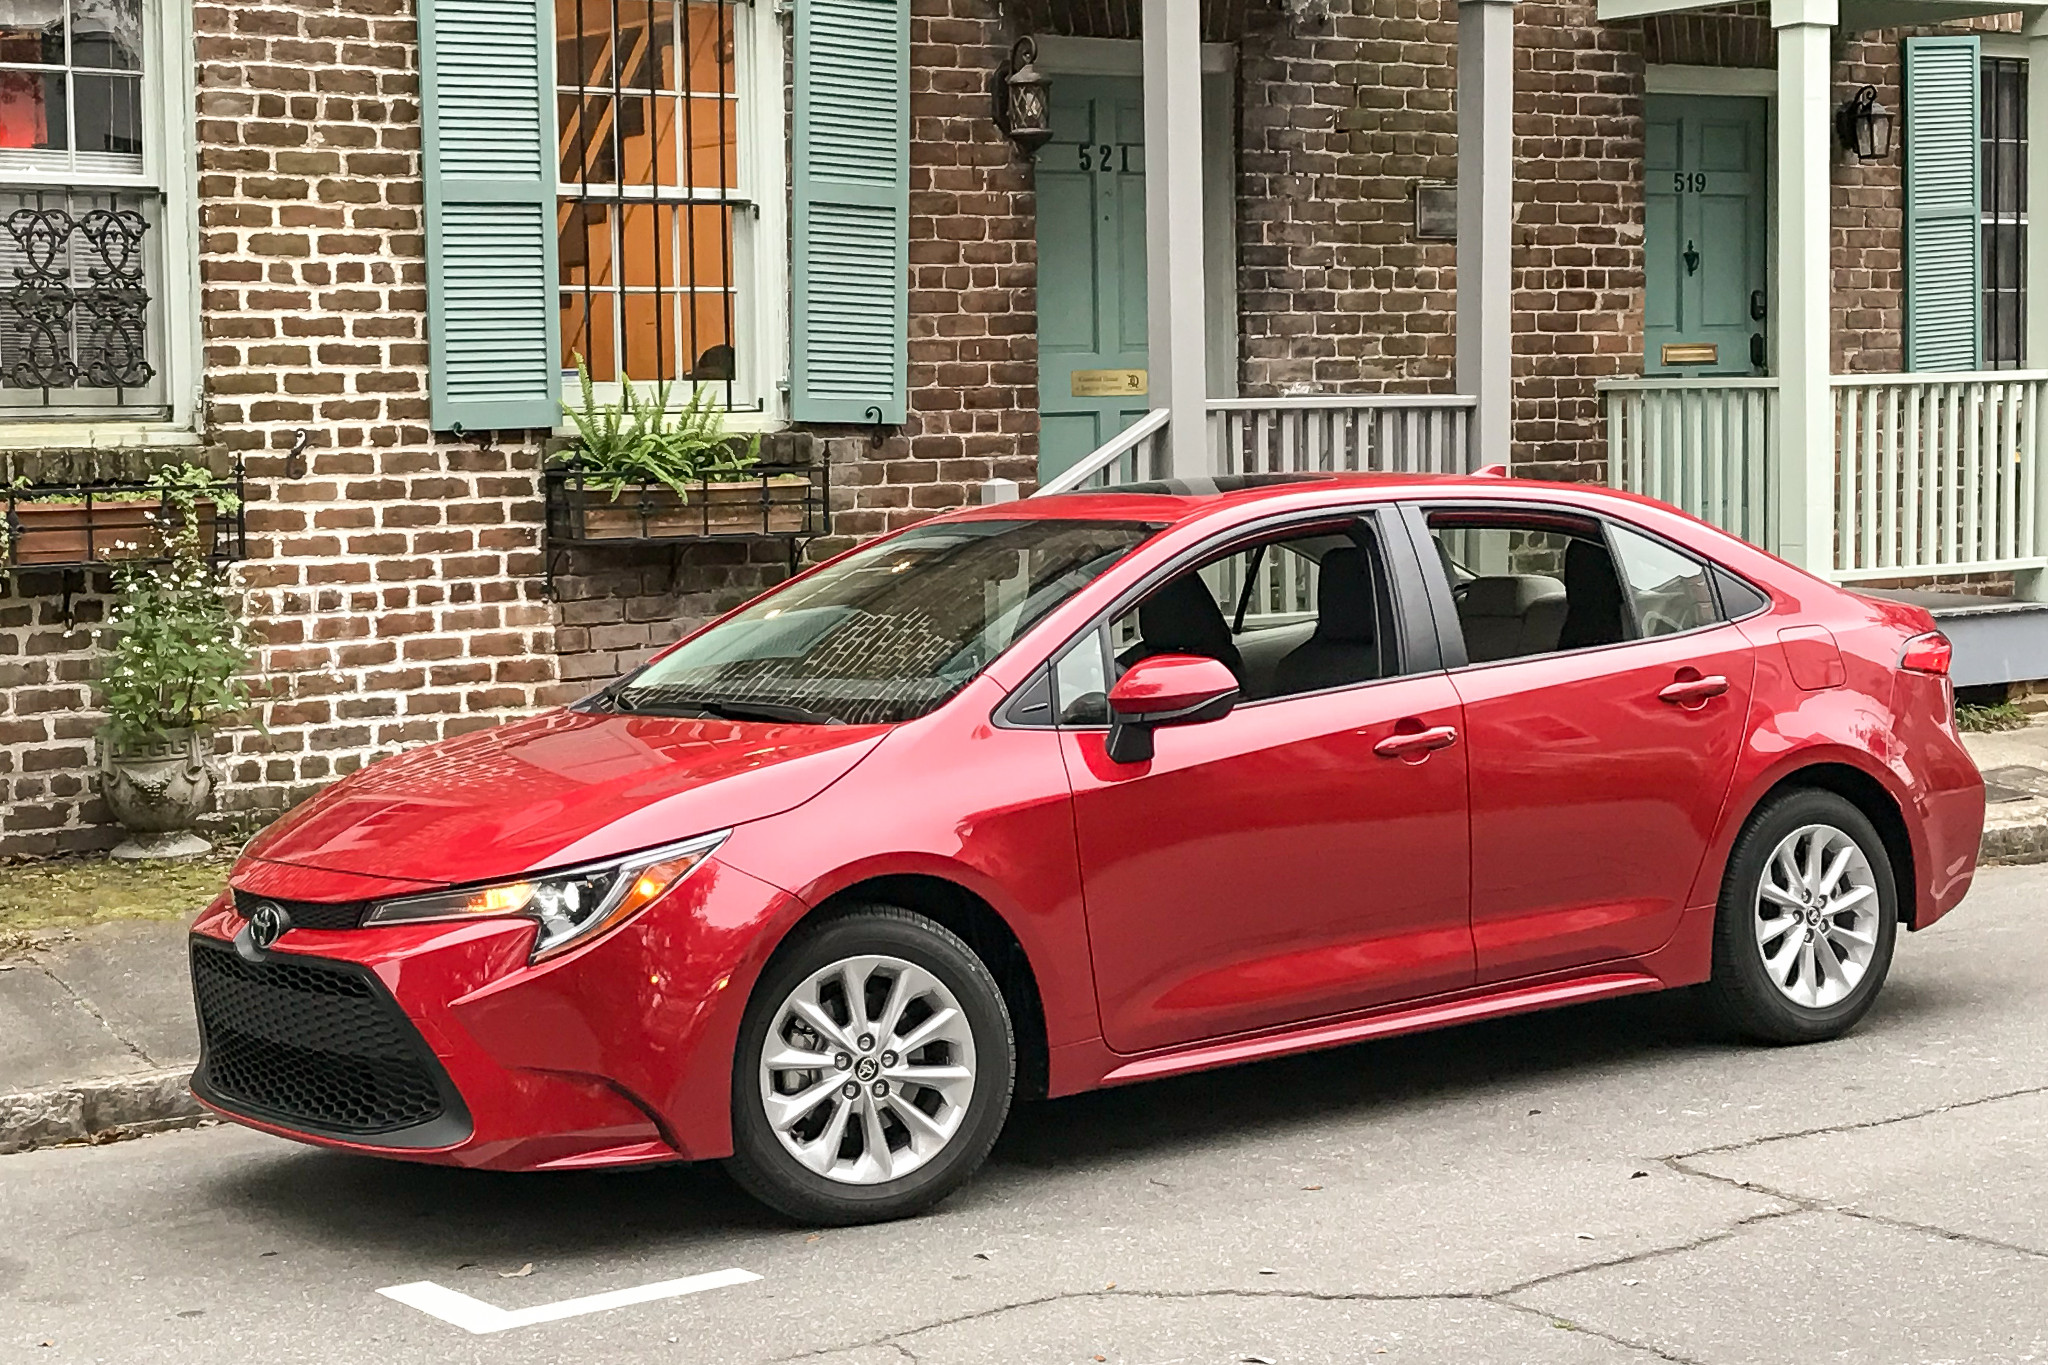 35-toyota-corolla-2020-angle--exterior--front--red.jpg